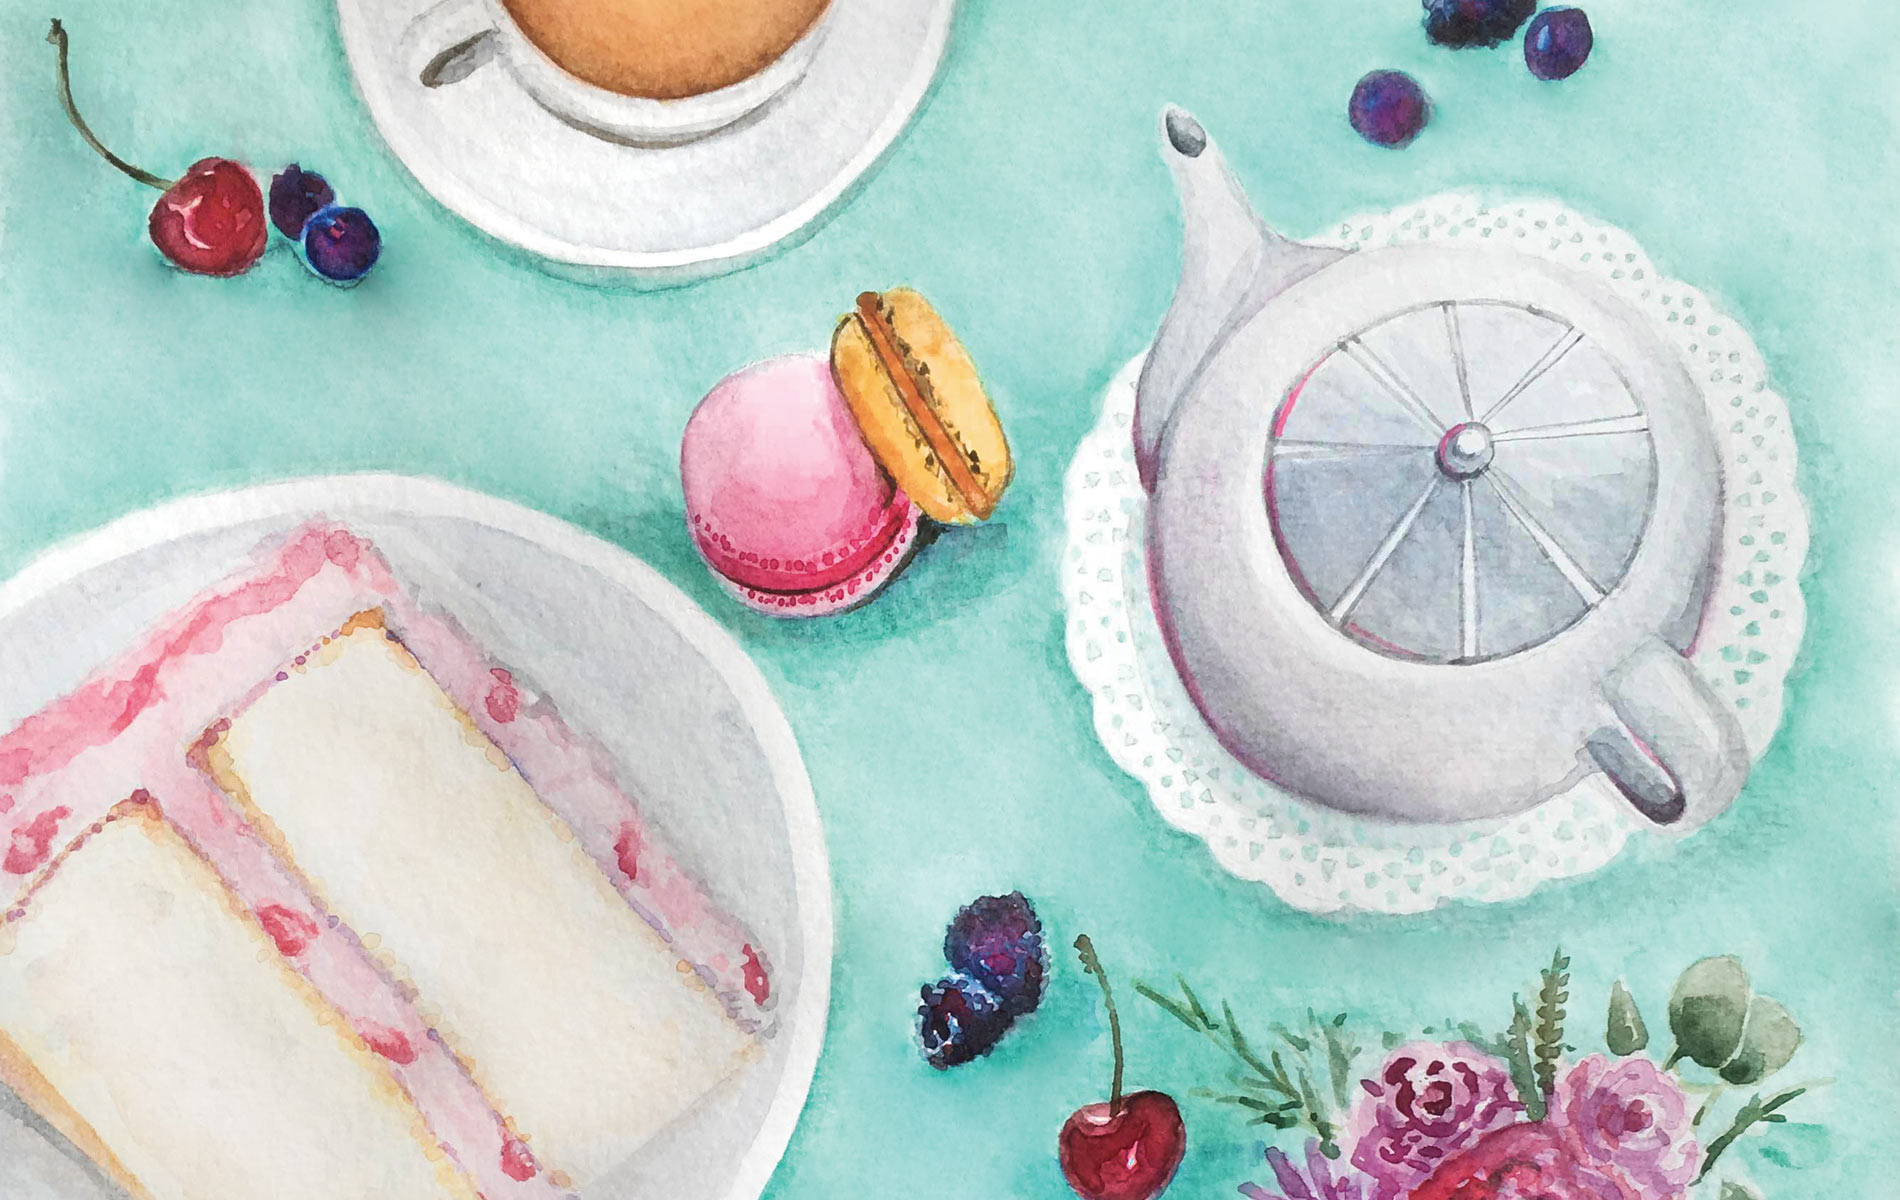 Tea Time And Sweet Dessert Watercolor Illustration By Lucy Mashburn With A Tiffany Blue Background